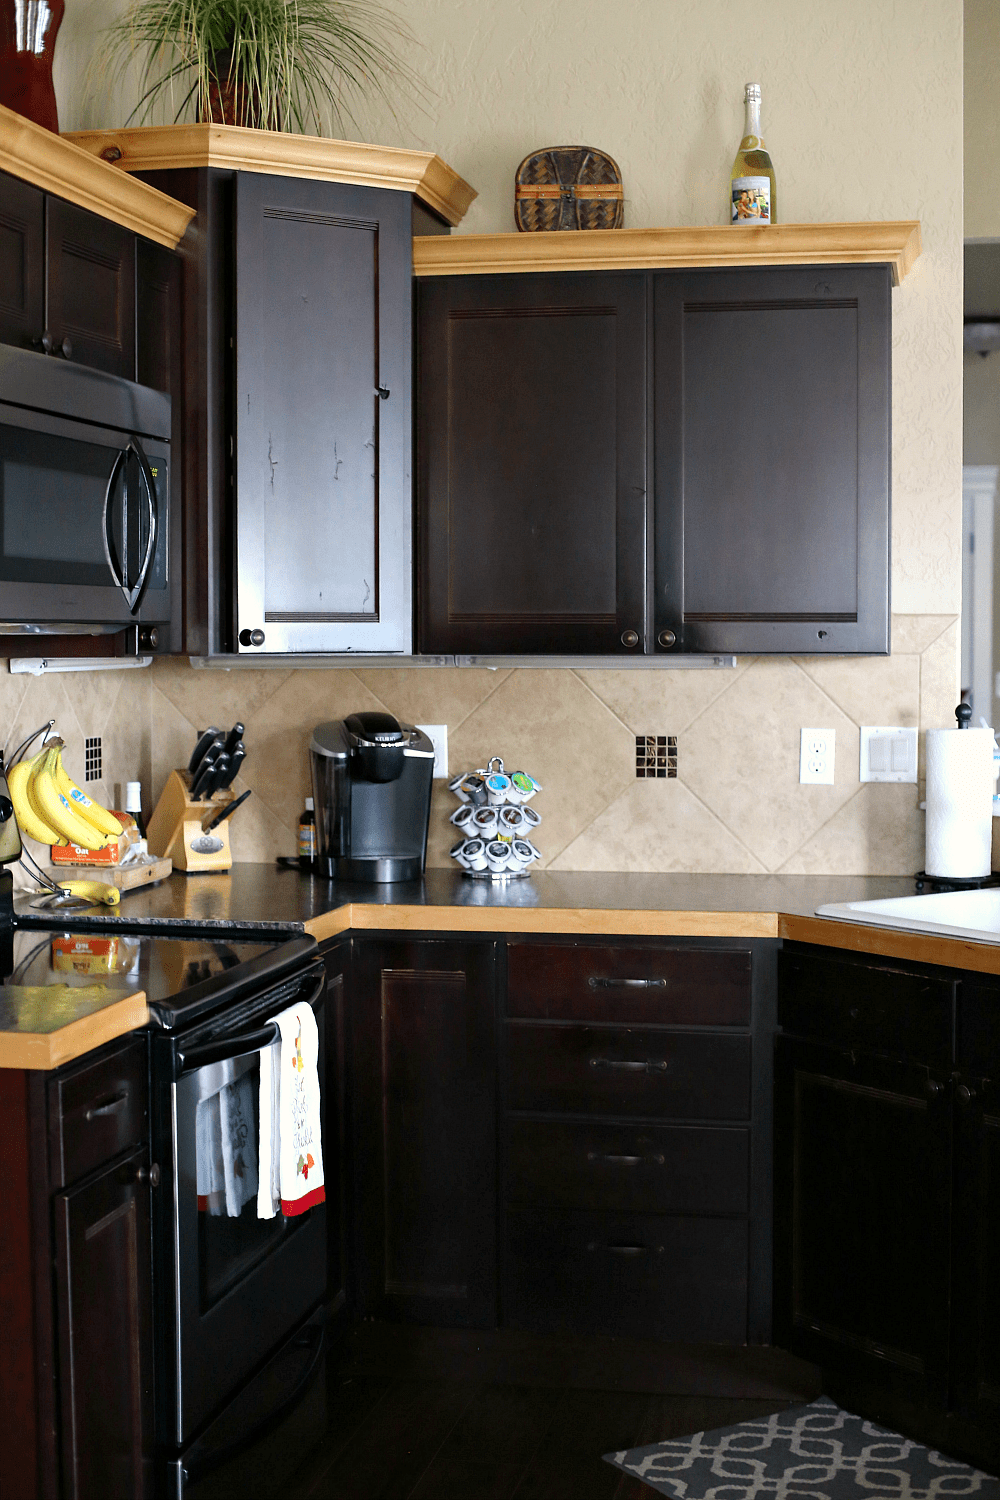 Build Your Dream Kitchen On A Budget With Sears Home Services The Pennywisemama